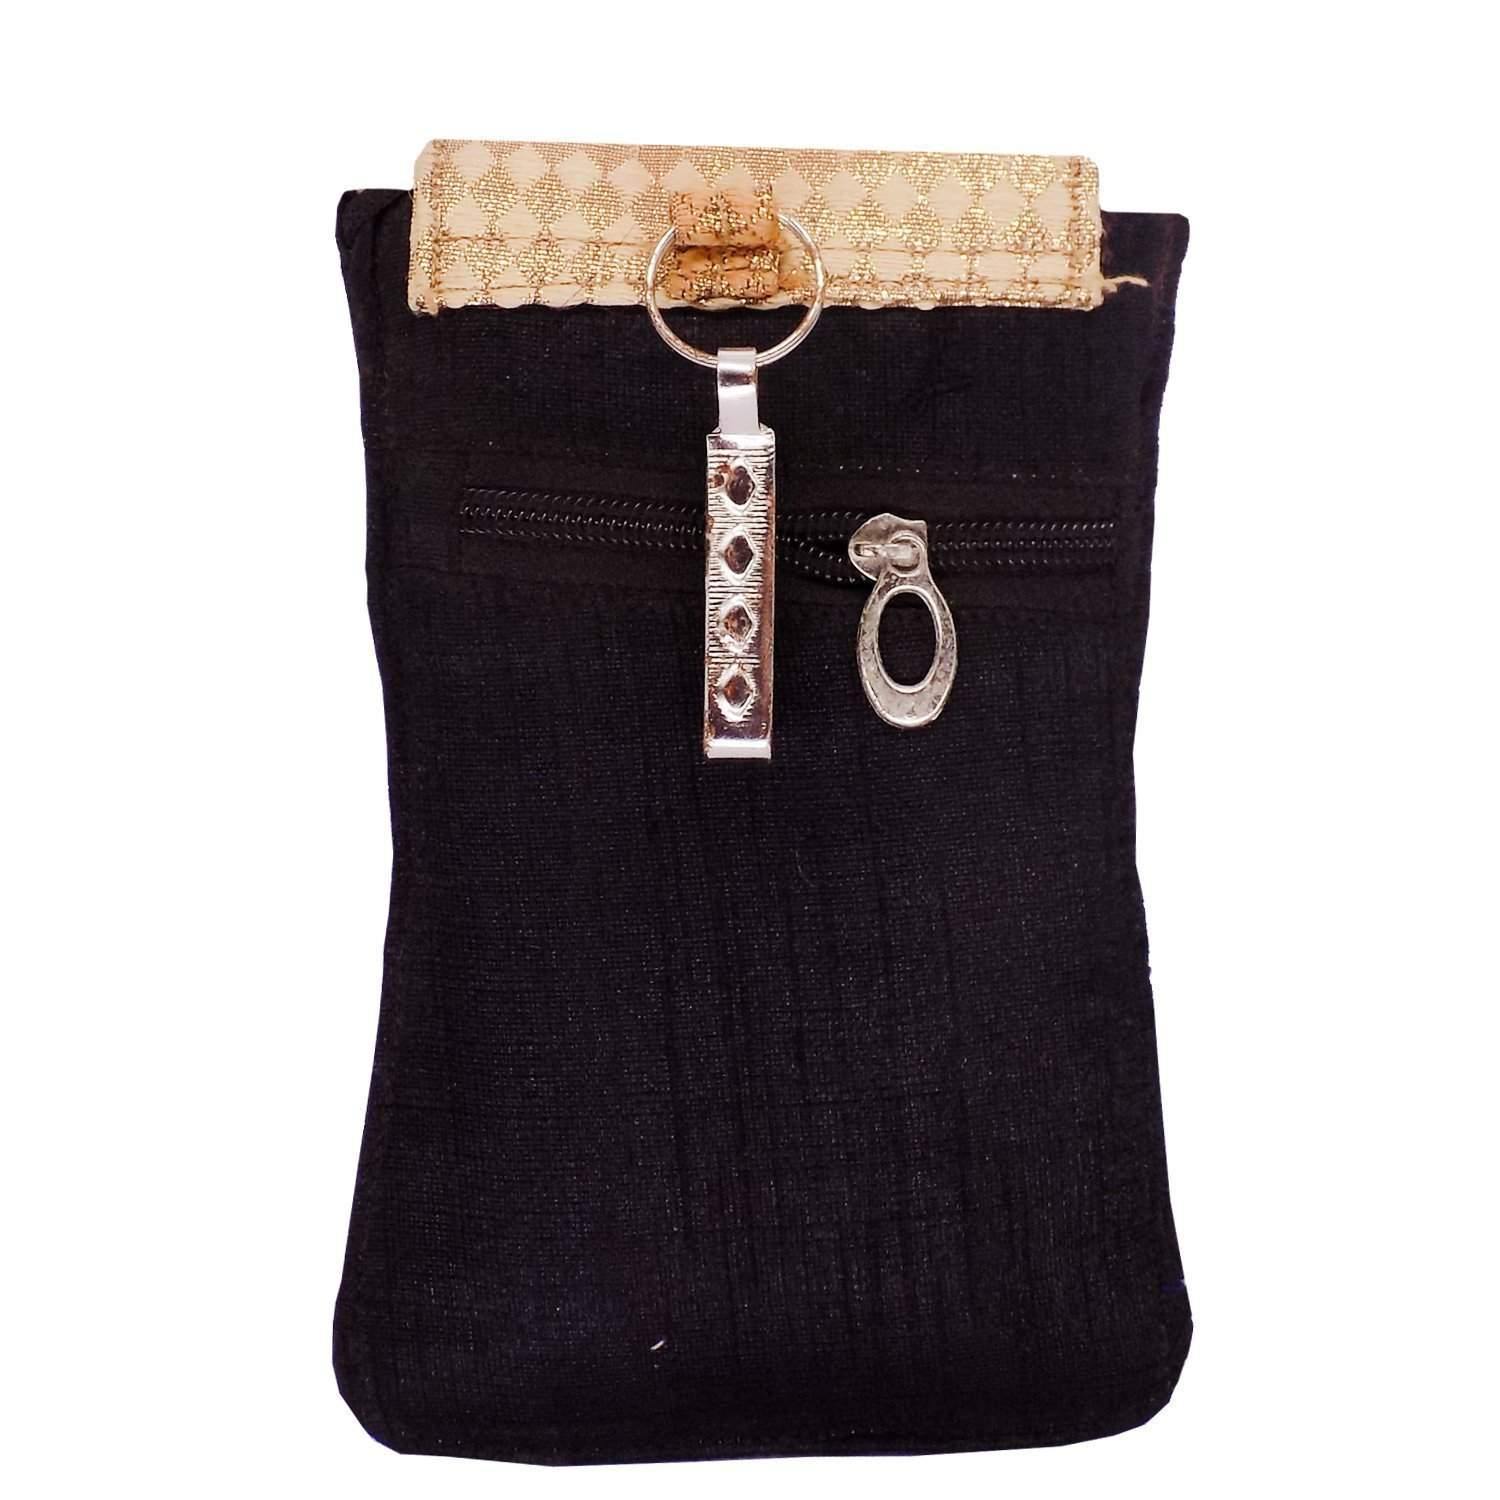 Ethnic Raw Silk Waist Clip Mobile Pouch (Black) - Bagaholics Gift